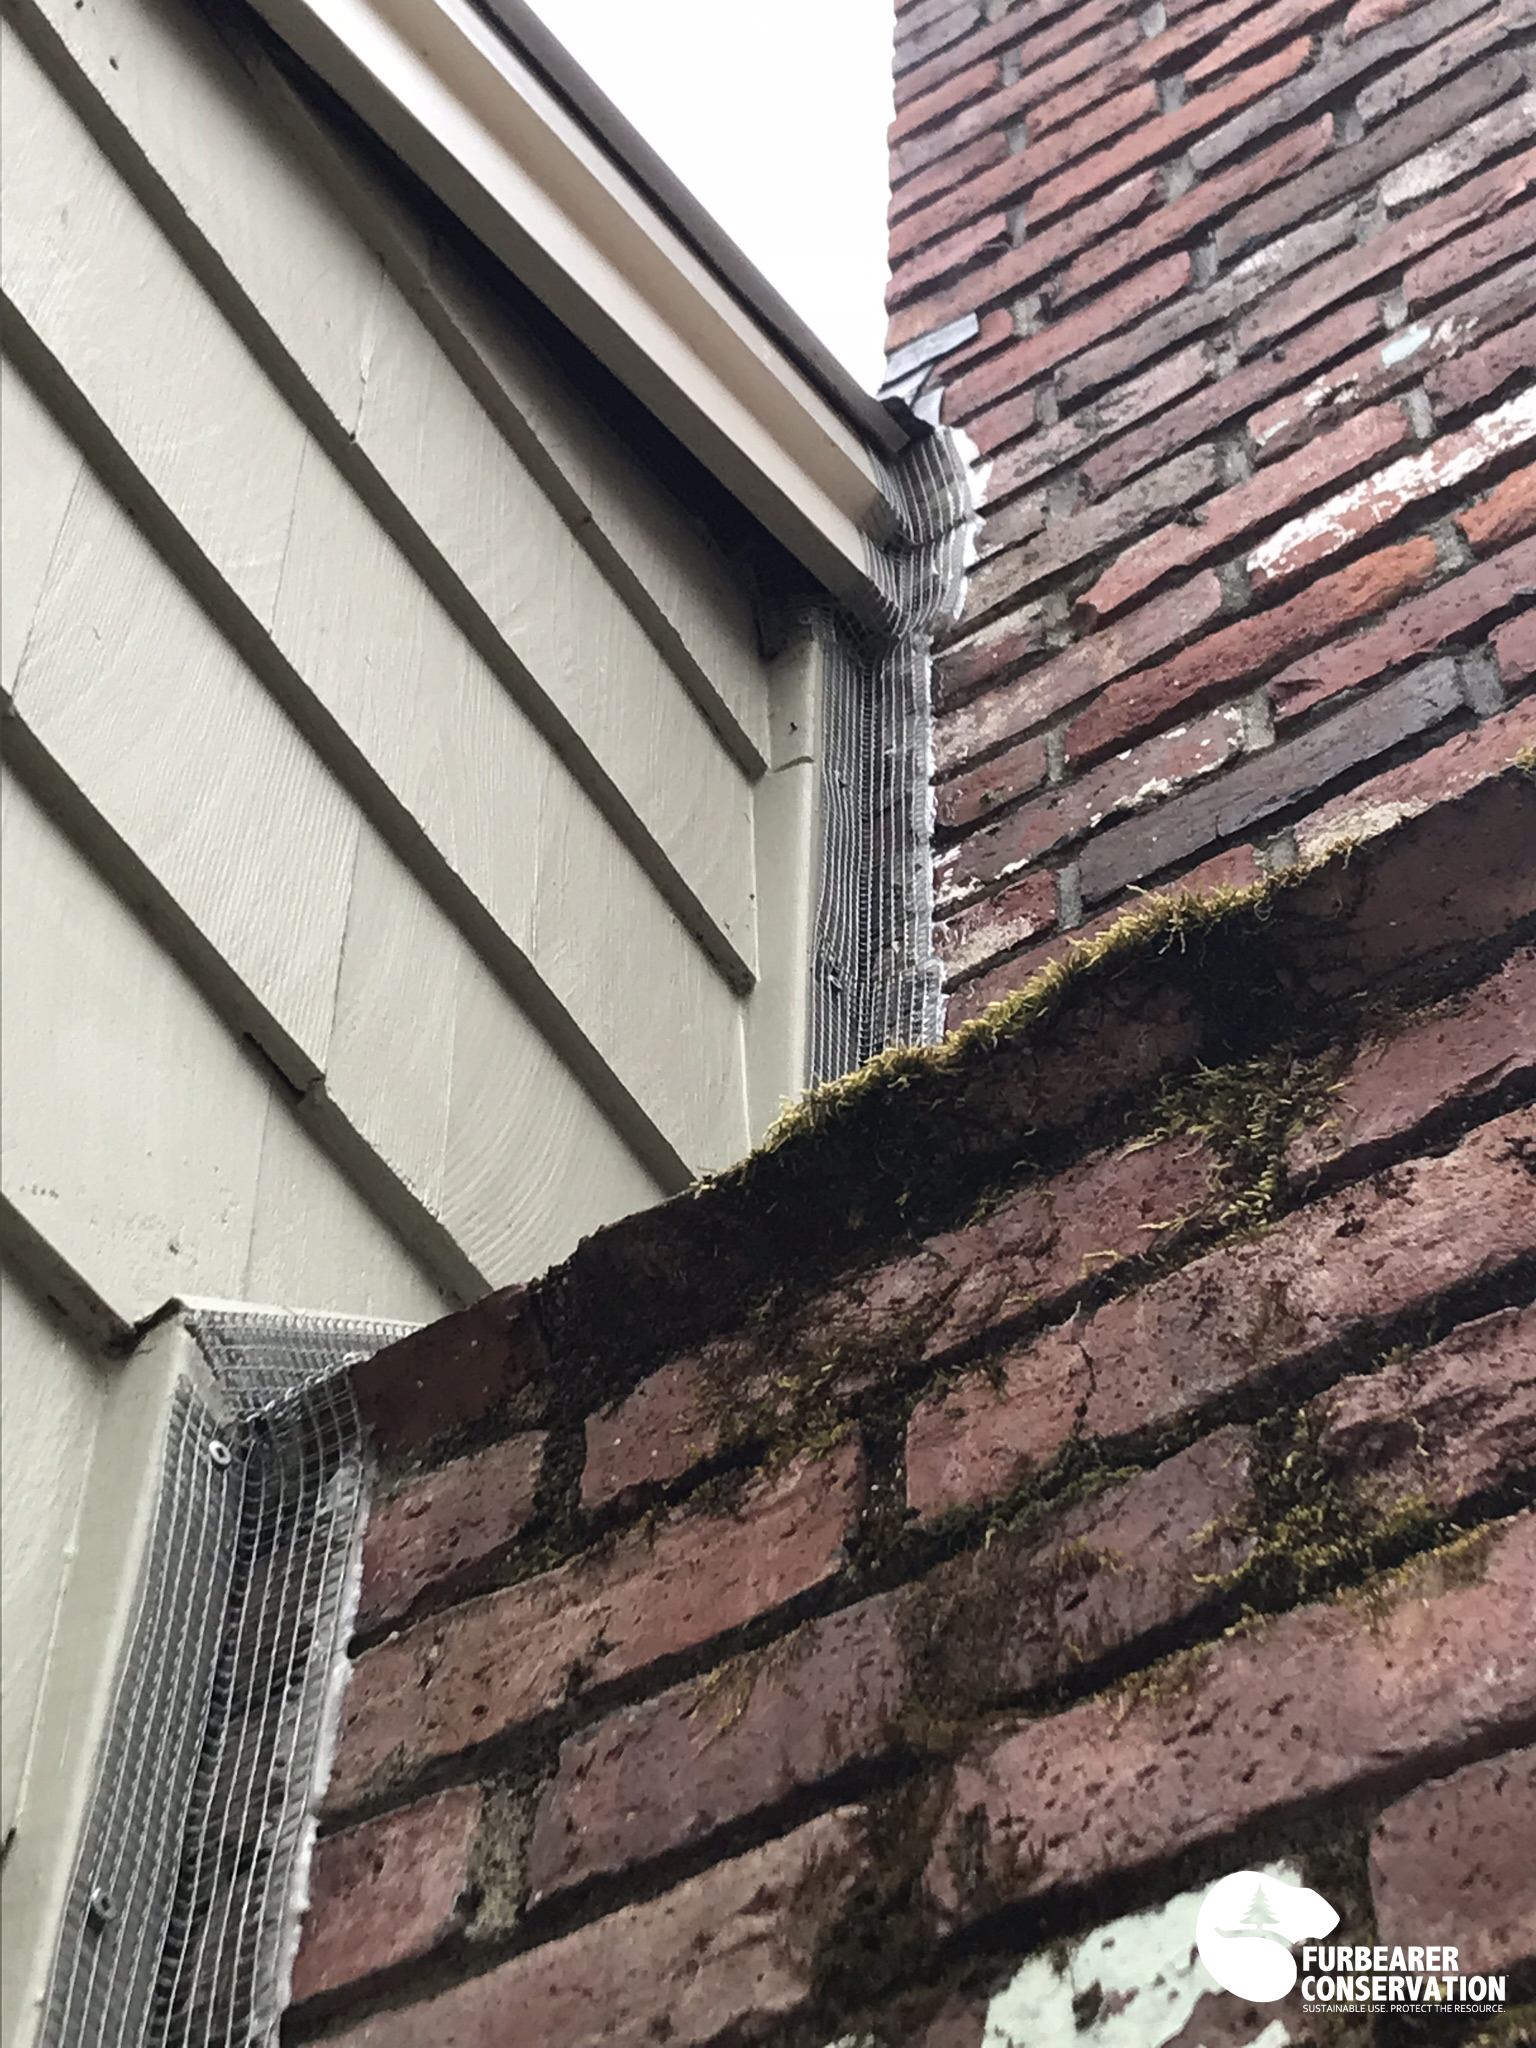 An example of exclusion techniques for squirrels, bats, and mice. Gaps sealed along a chimney using adhesives and steel screening.